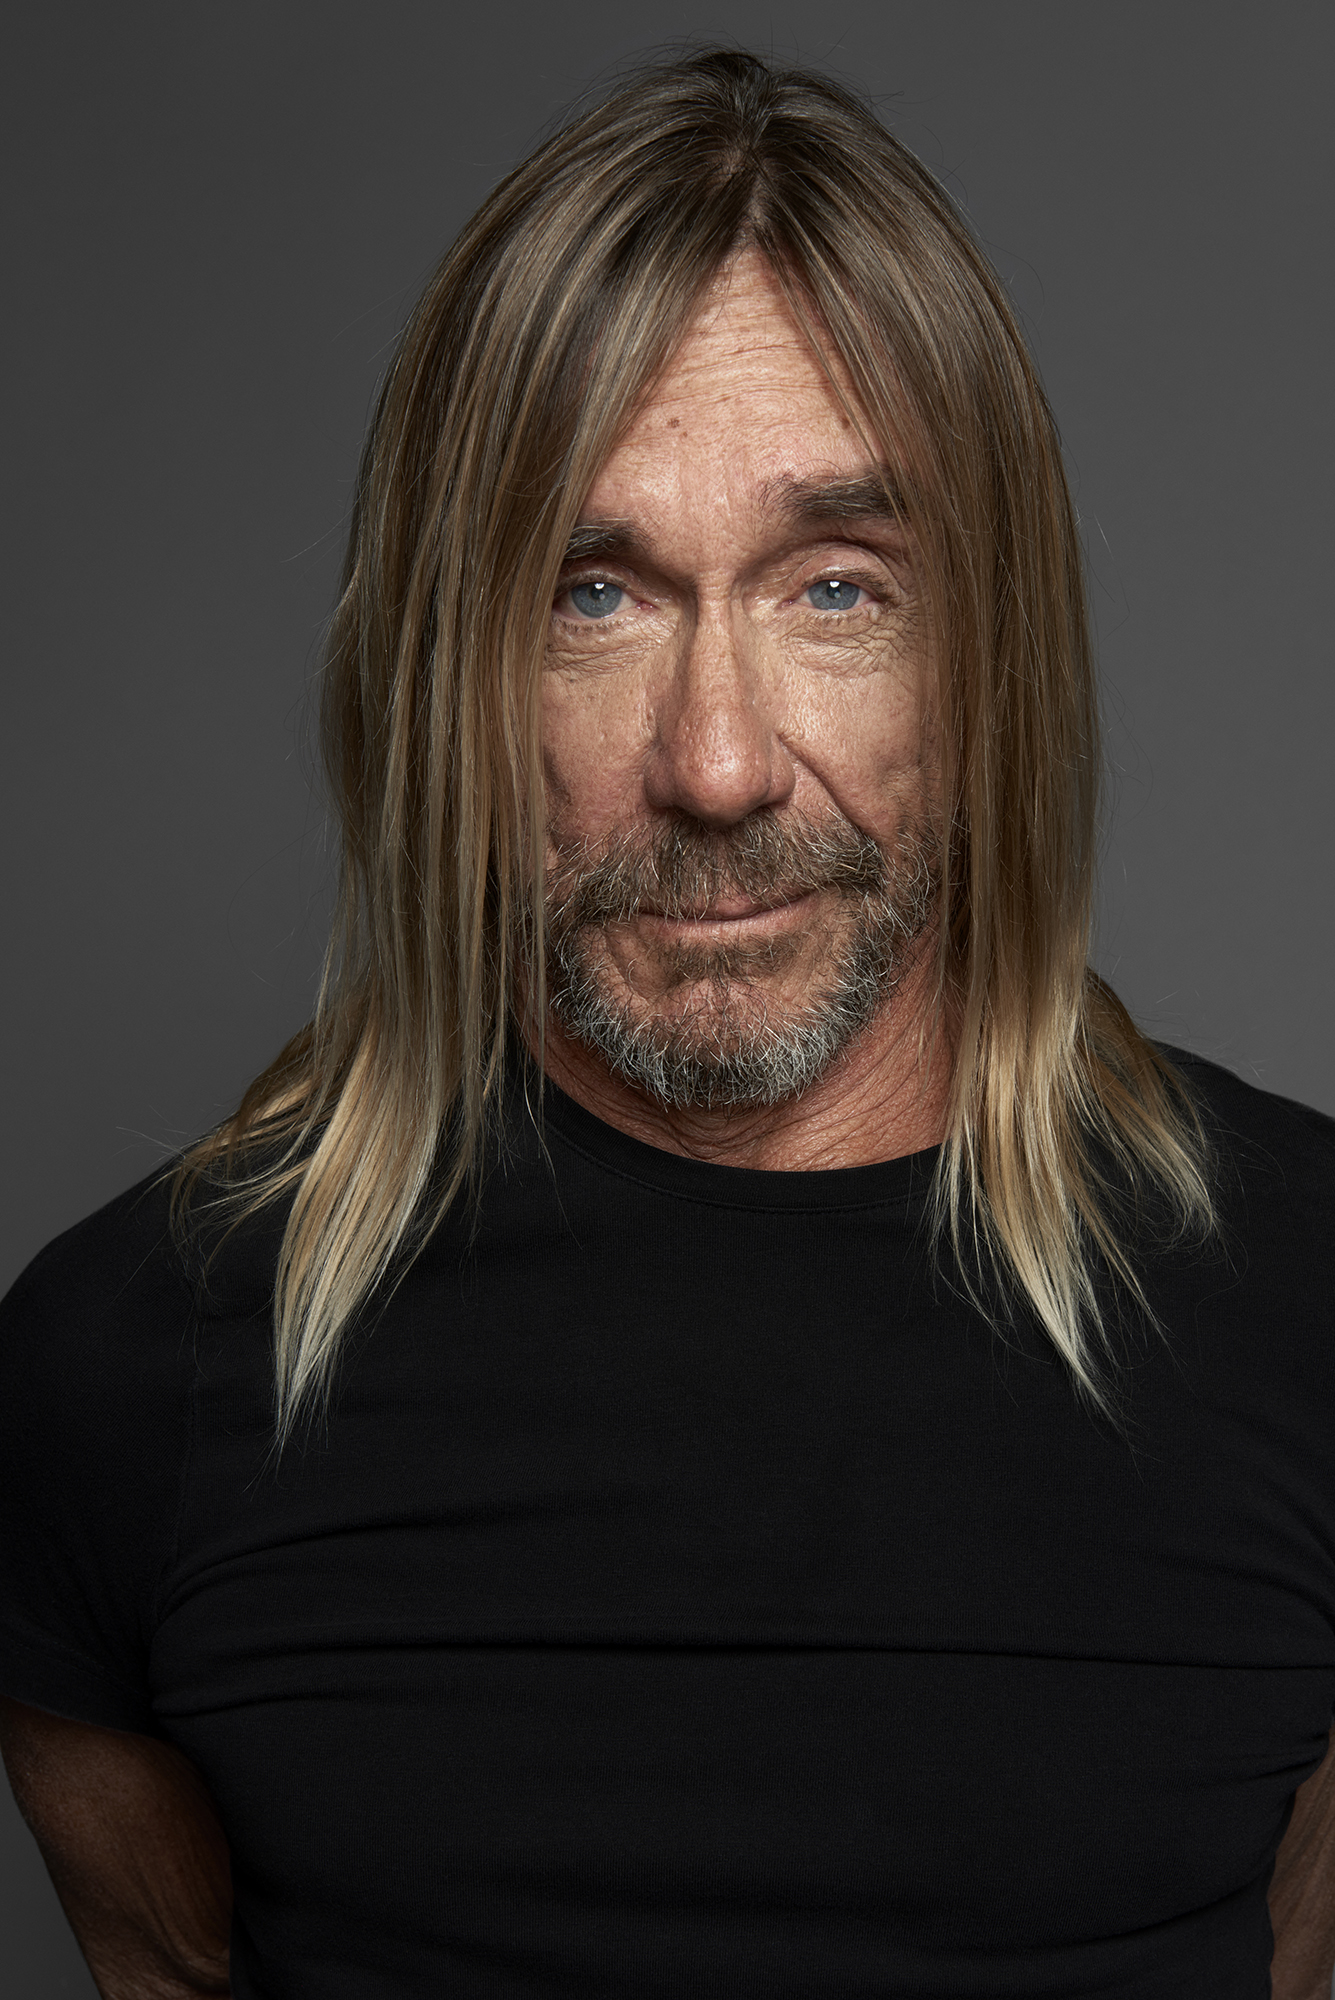 Rob Baker Ashton - Iggy Pop